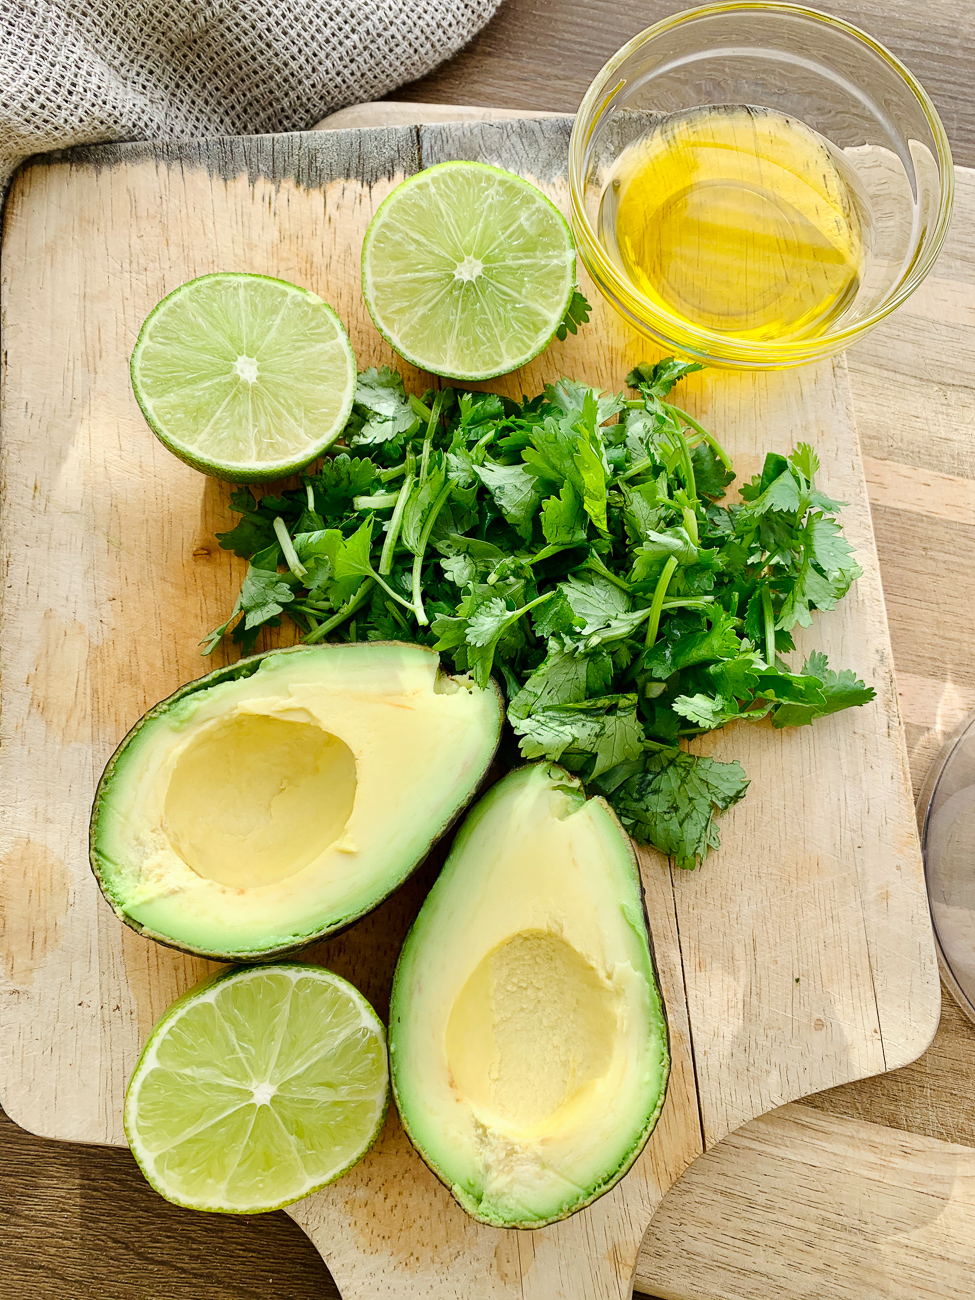 INGREDIENTS FOR AVOCADO DRESSING